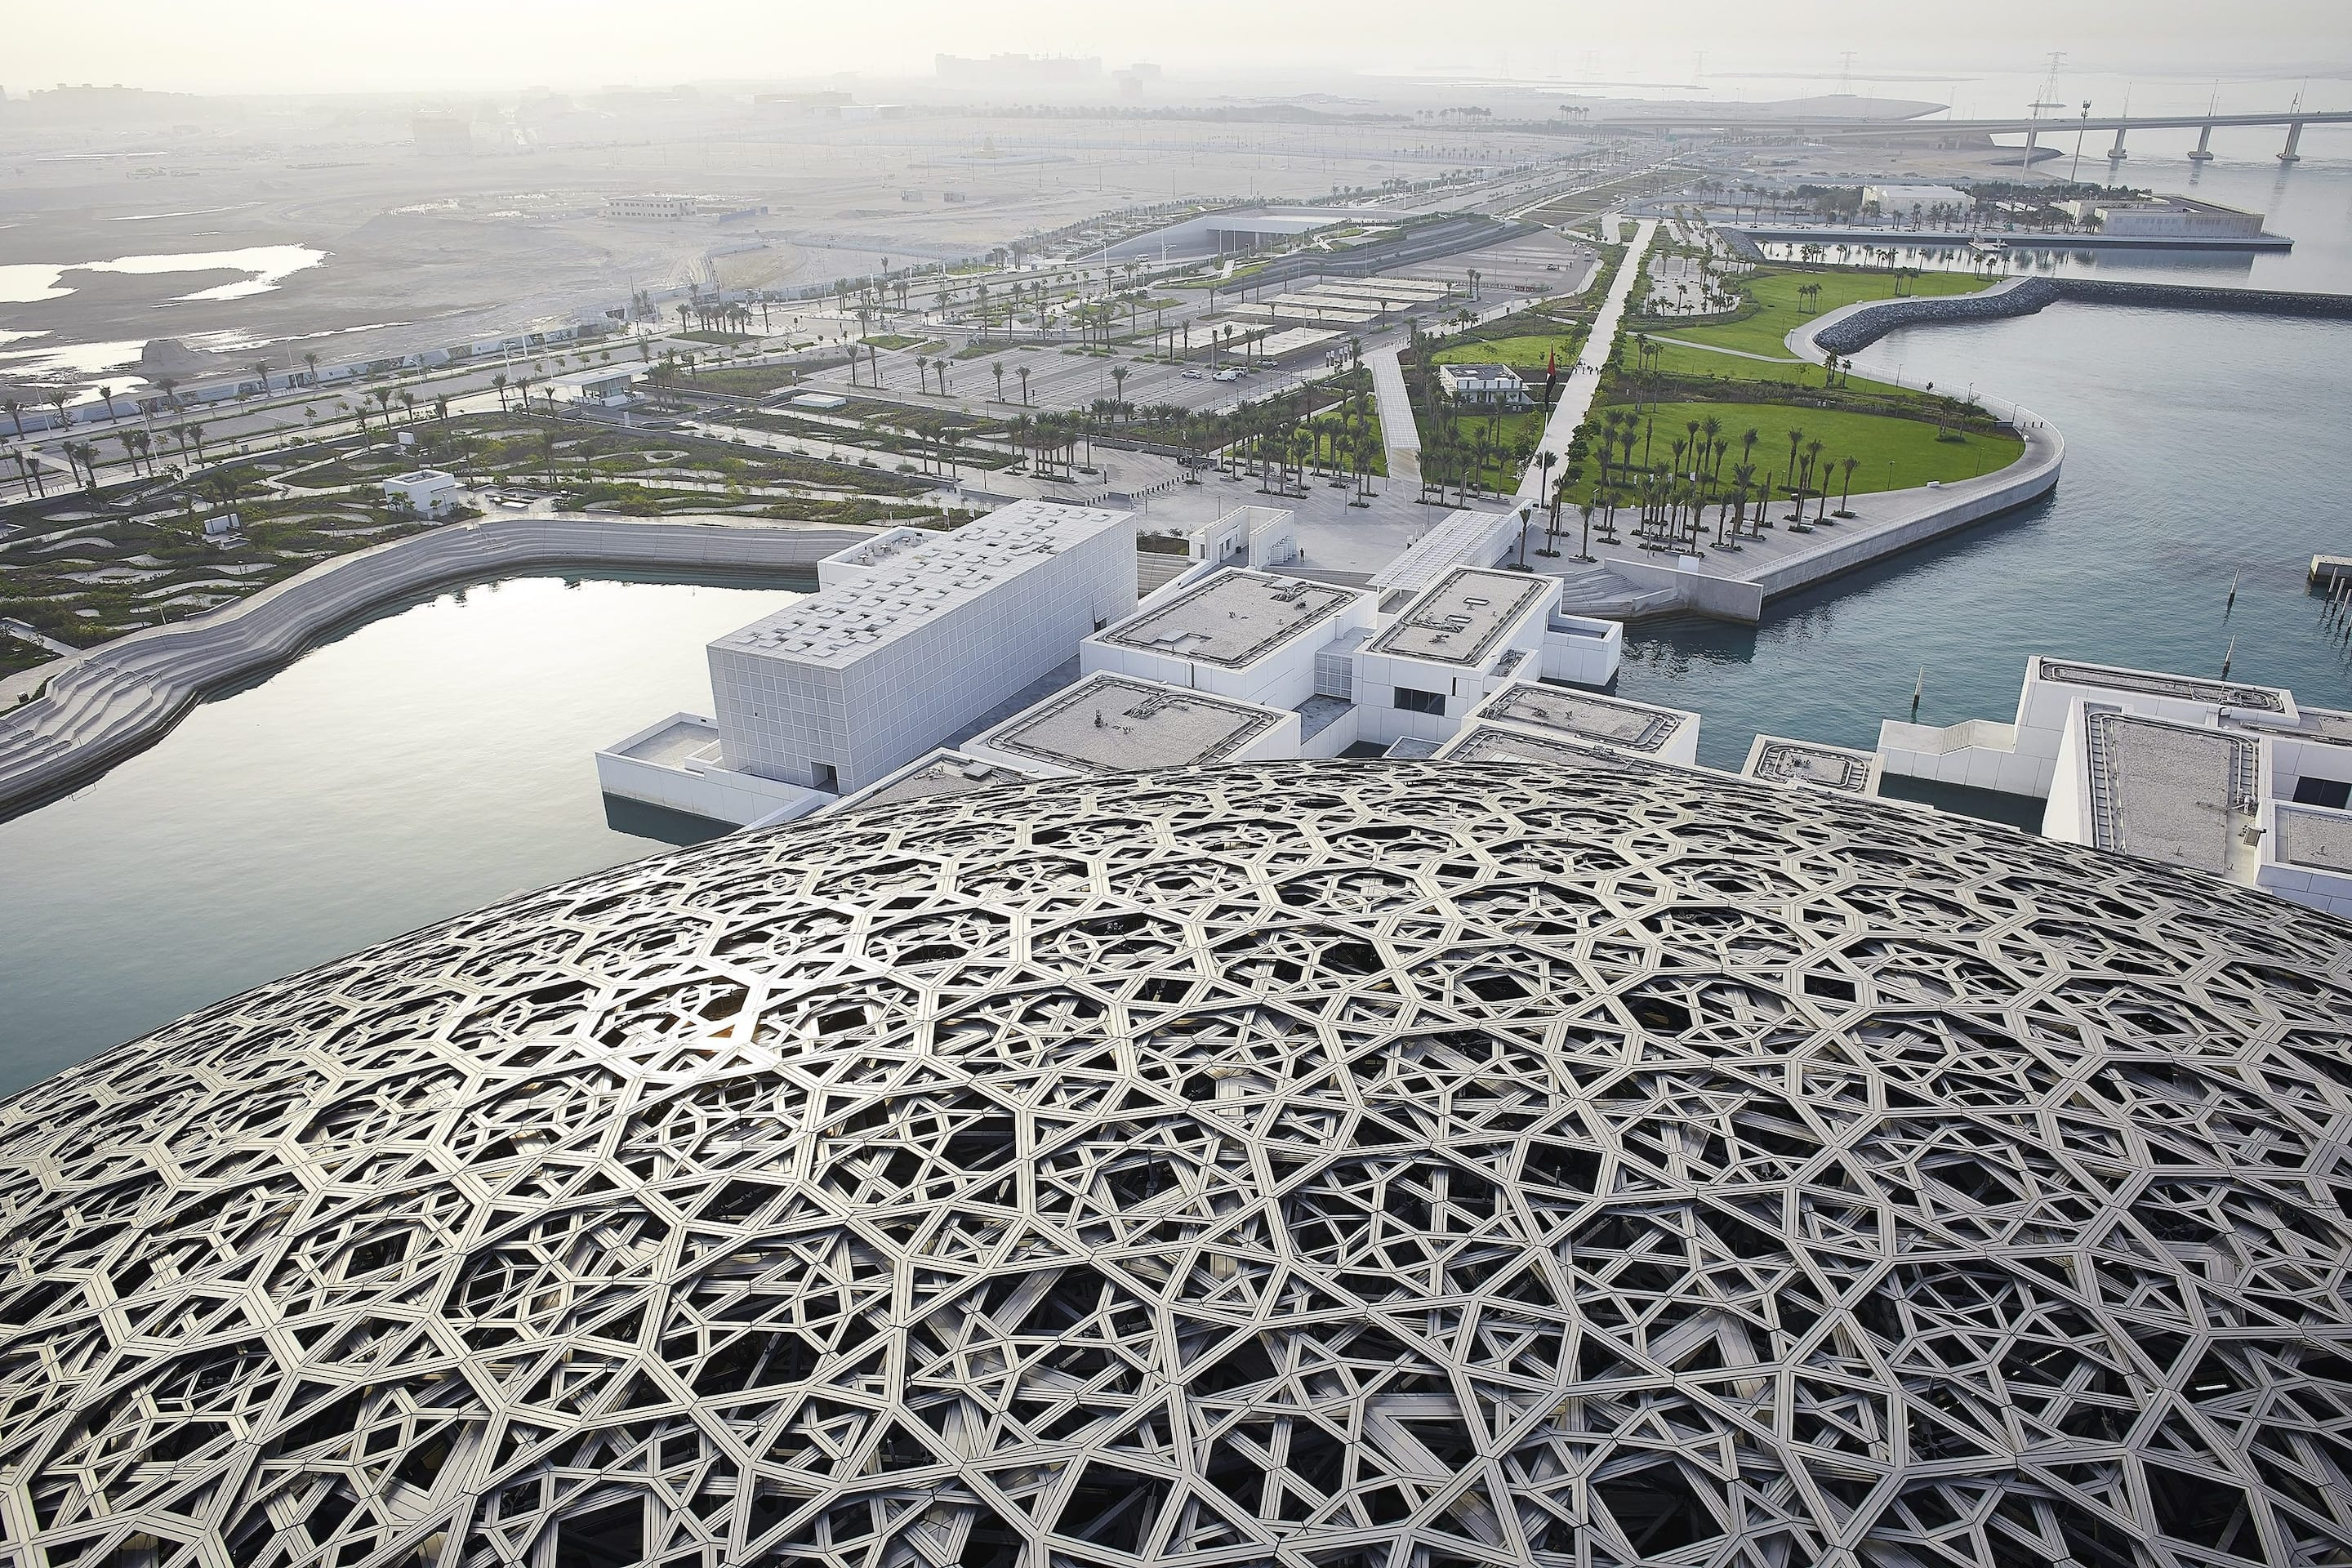 View of Louvre Abu Dhabi from above